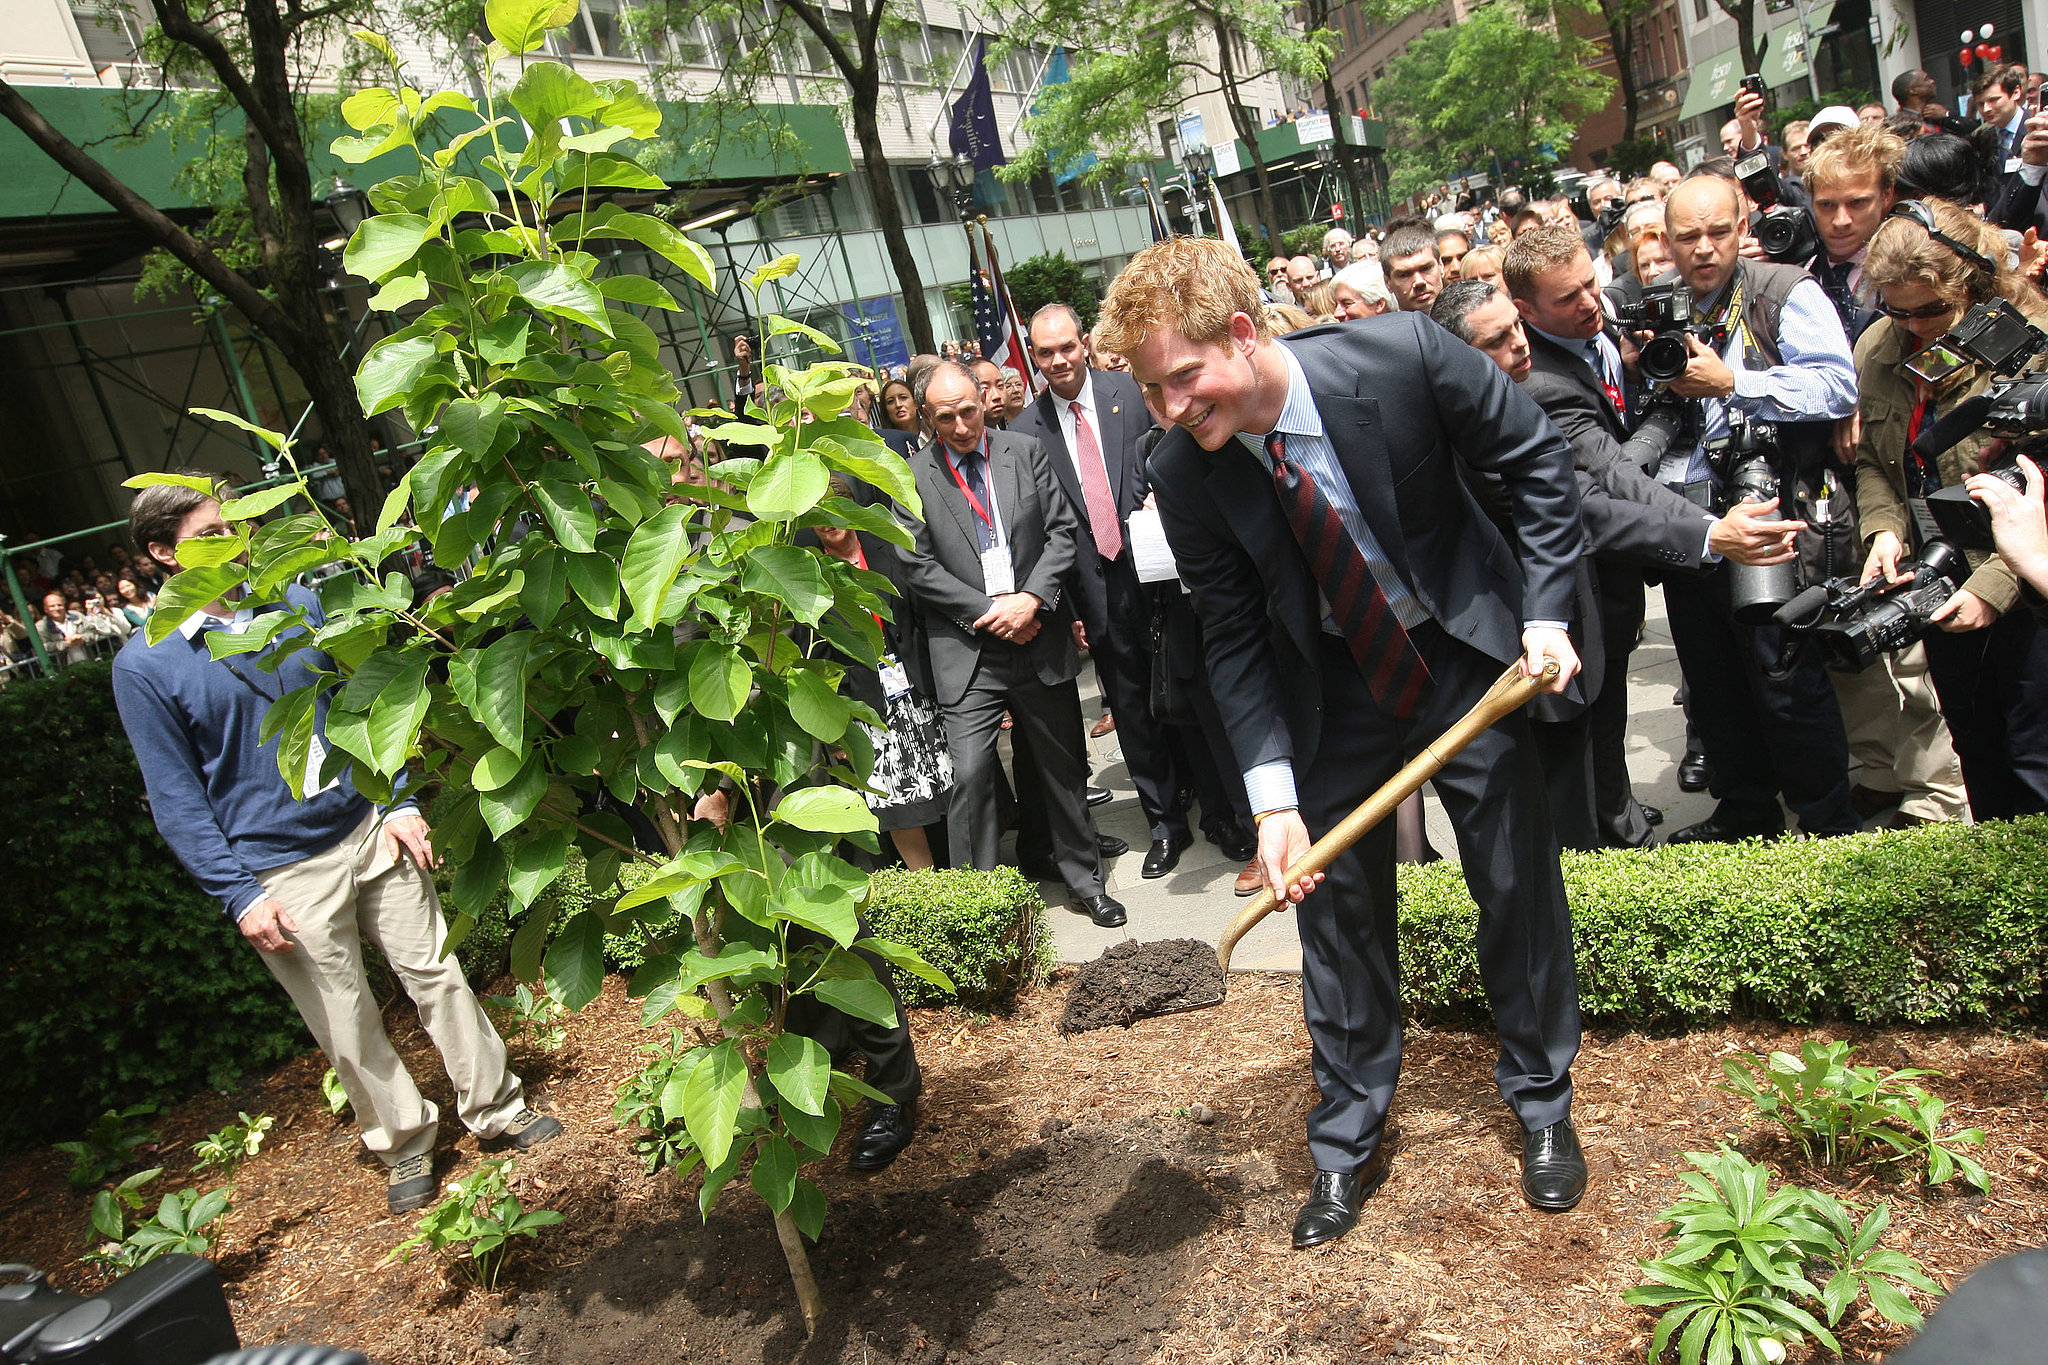 Prince Harry planted a tree at the British Garden at Hanover Square in May 2009.